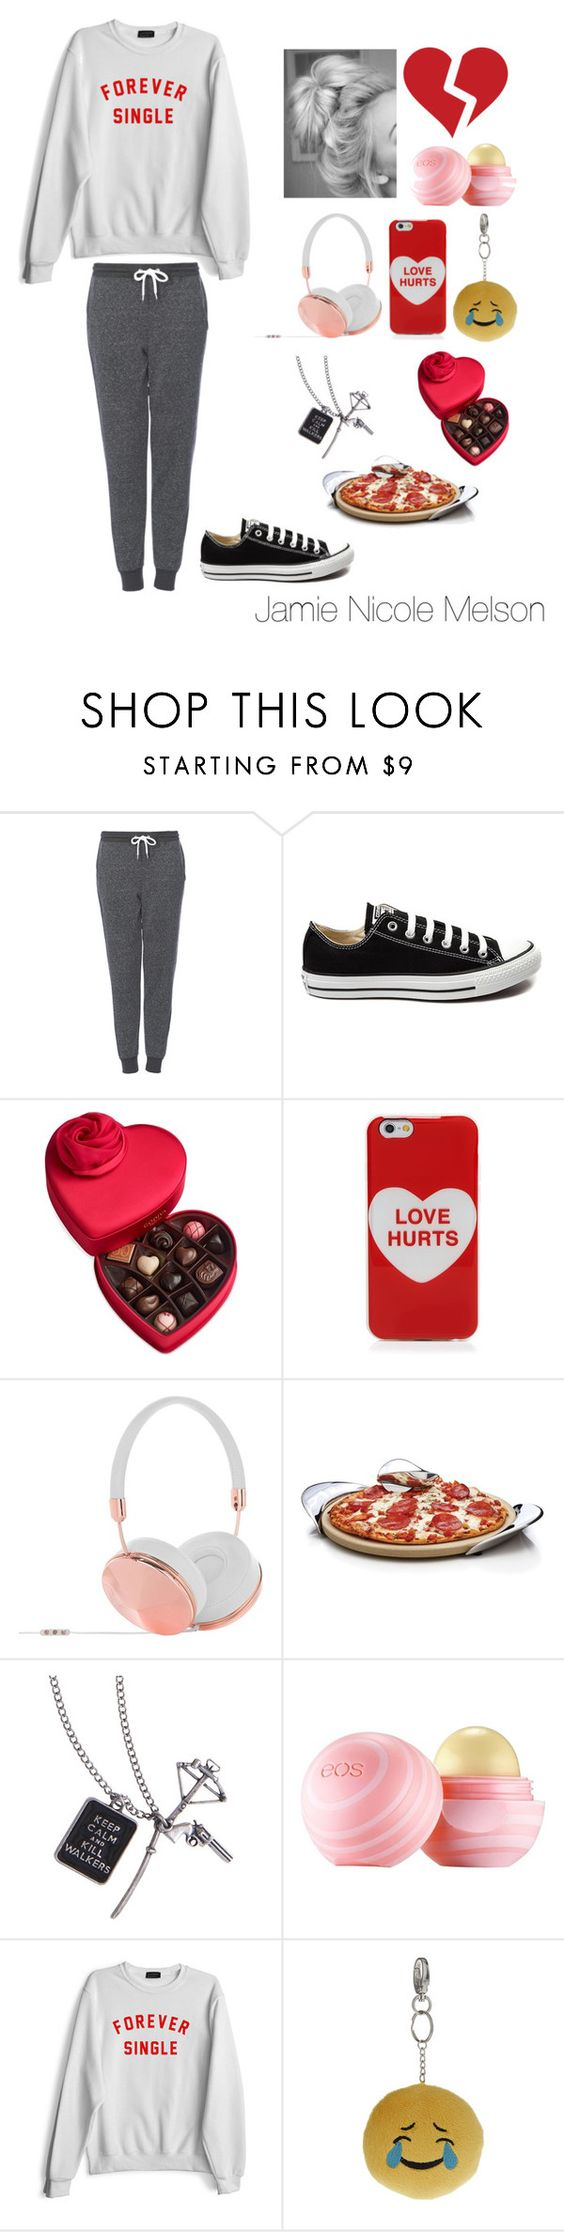 """""""Being Single on Valentine's Day"""" by jamiemelson ❤ liked on Polyvore featuring beauty, Topshop, Converse, Godiva, Marc Jacobs, Frends, Nambé and Eos"""